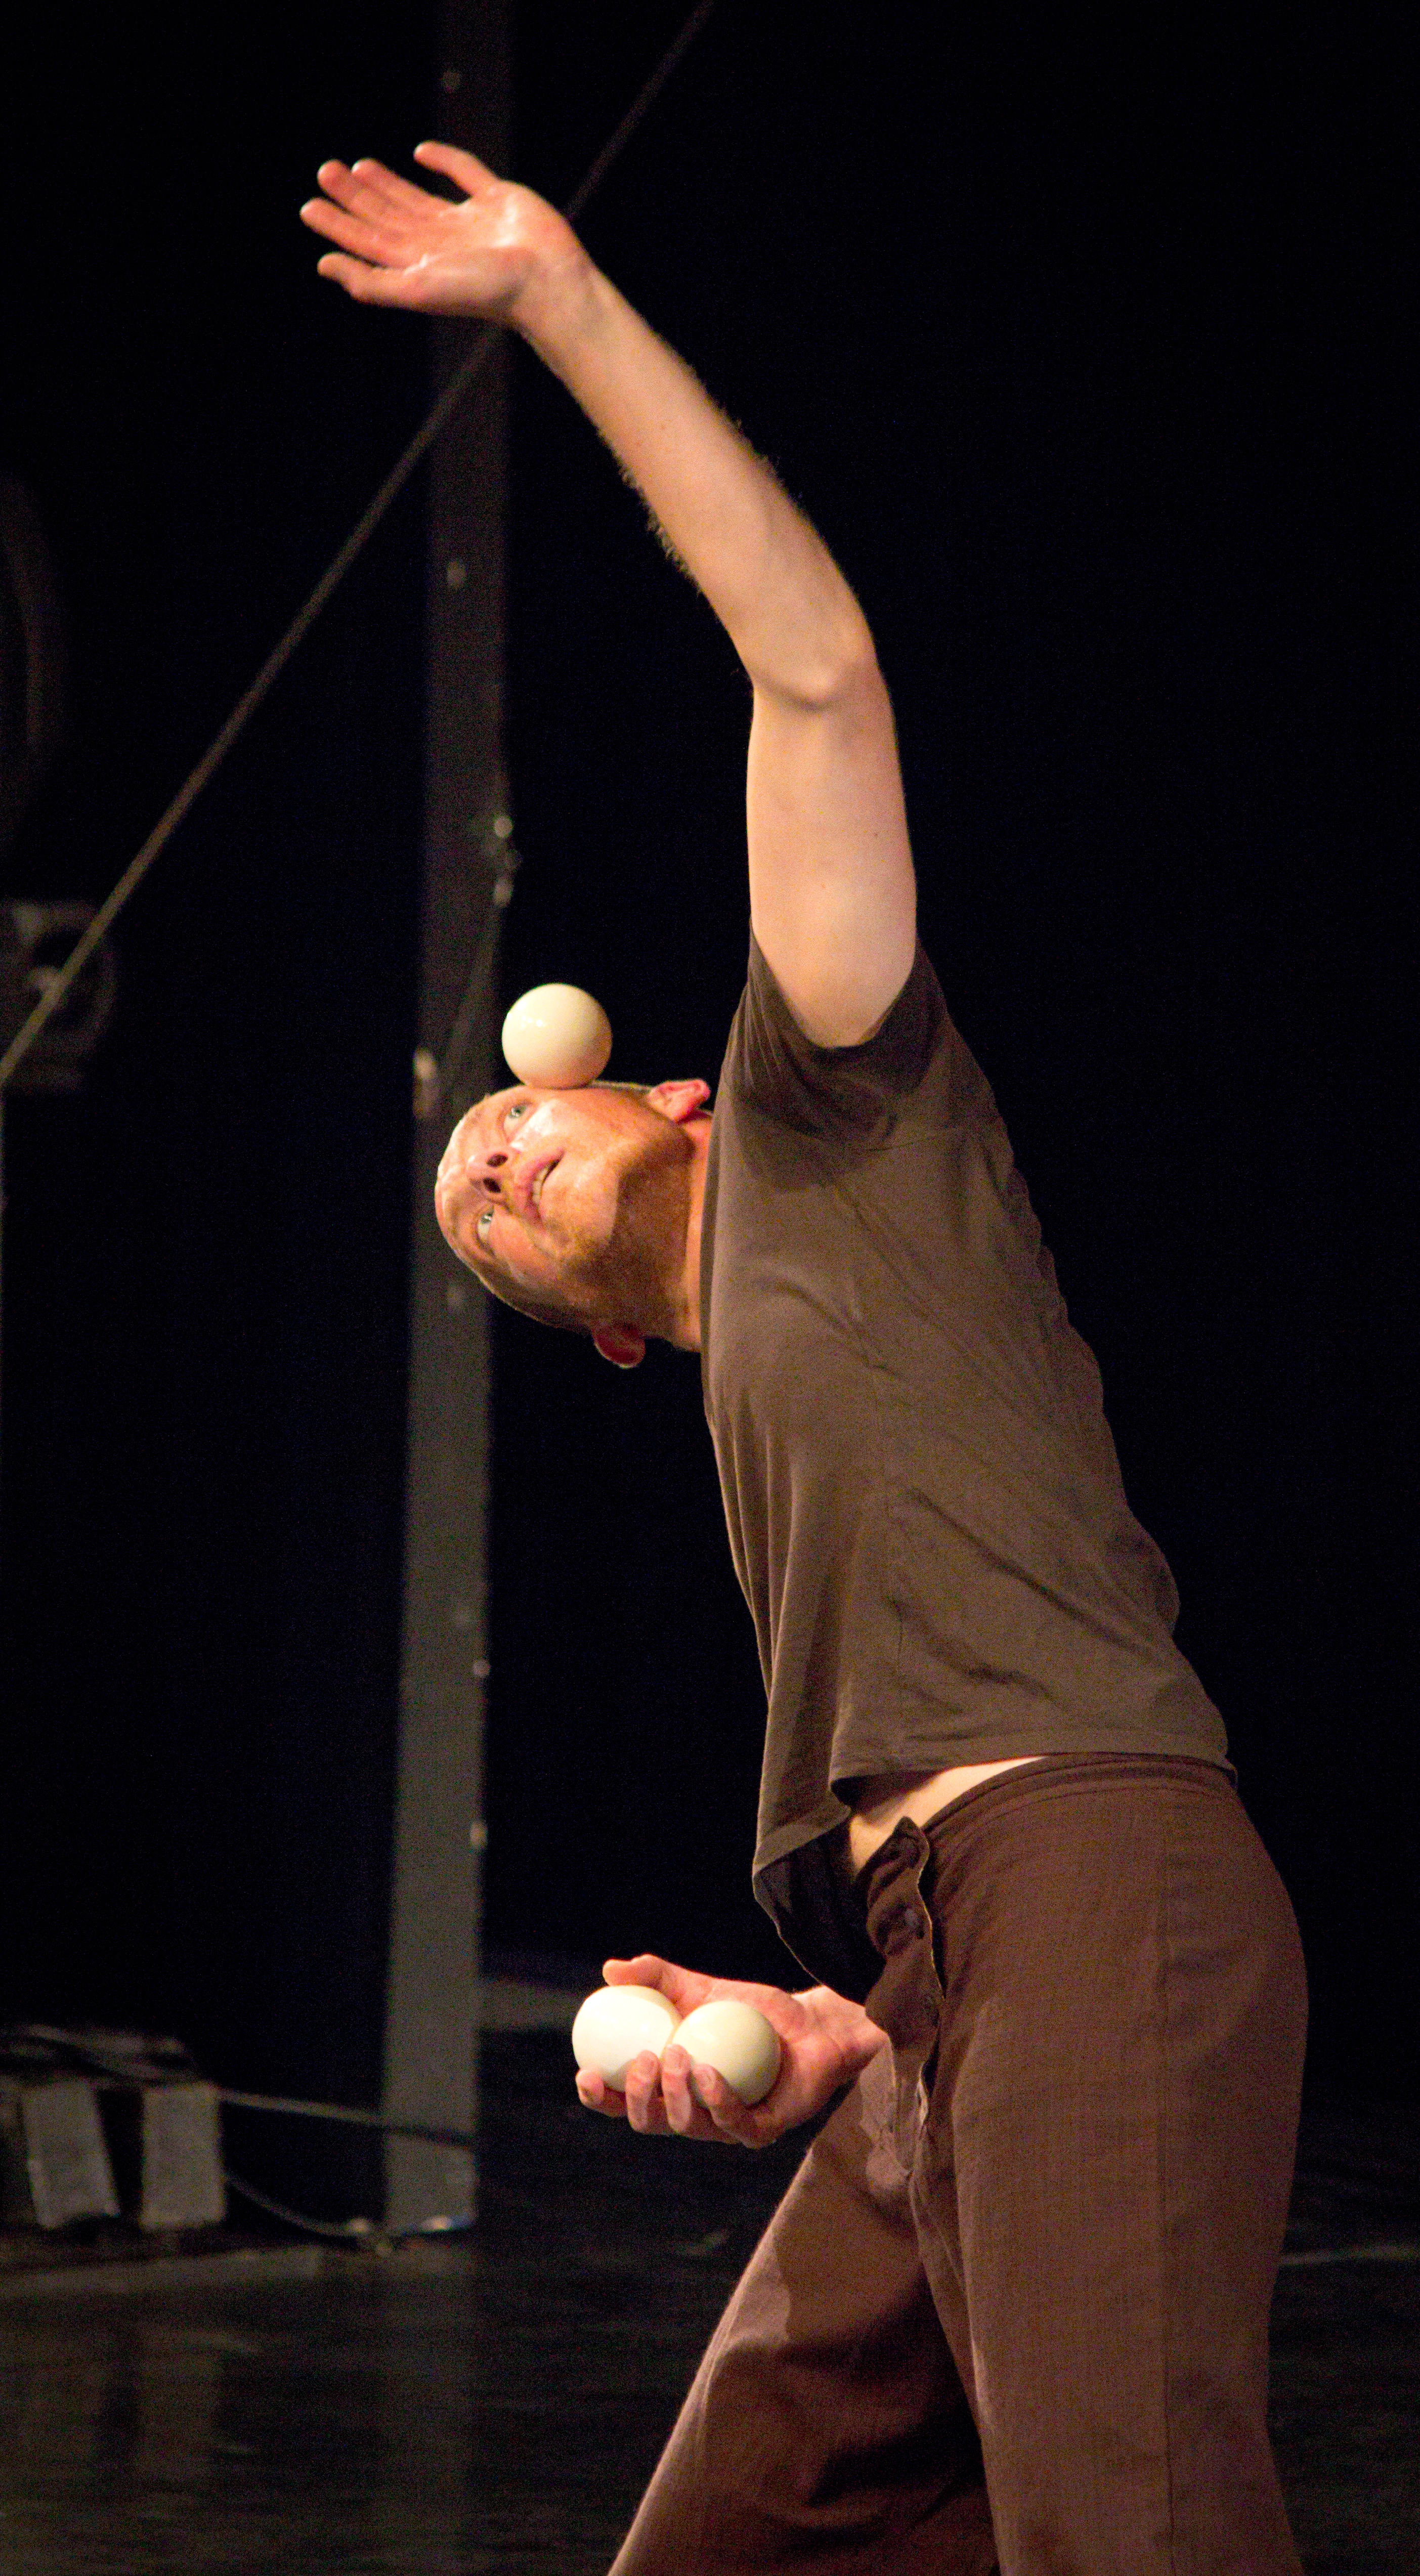 Berlin Juggling Convention 2013 Gala Show: Thomas Hoeltzel.